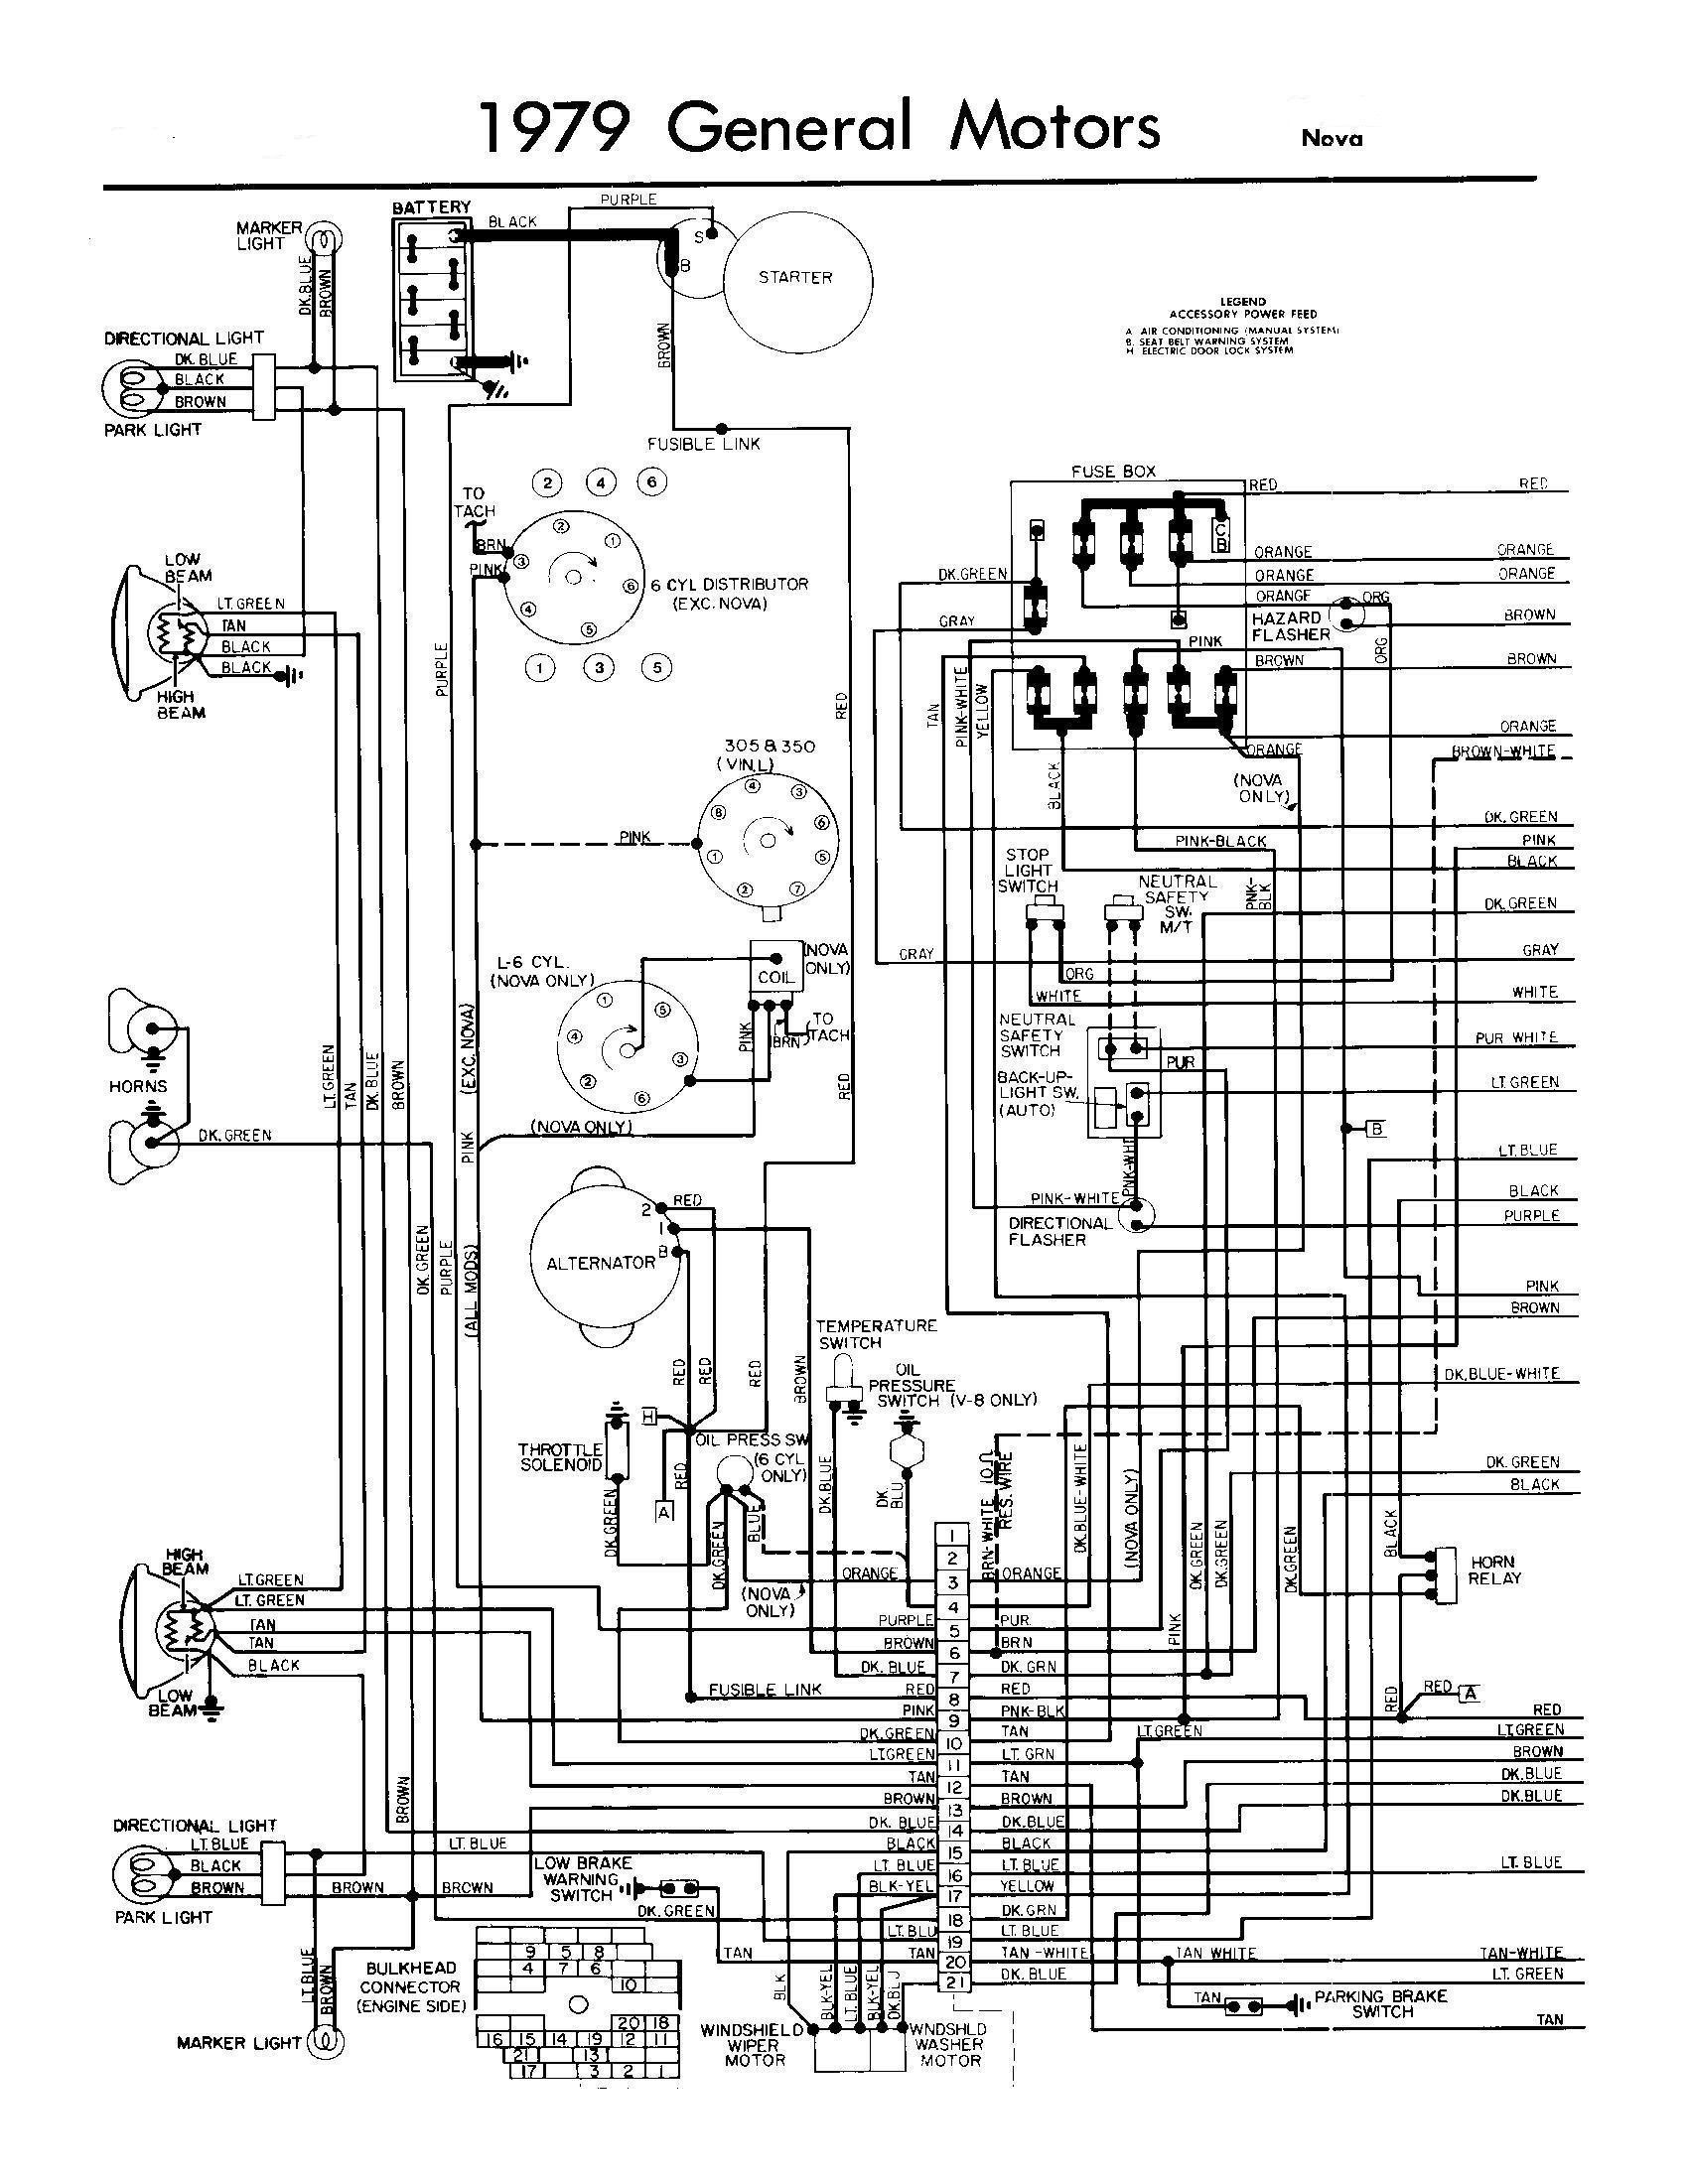 1985 Chevy 350 Firing Order Diagram - Wiring Diagram •